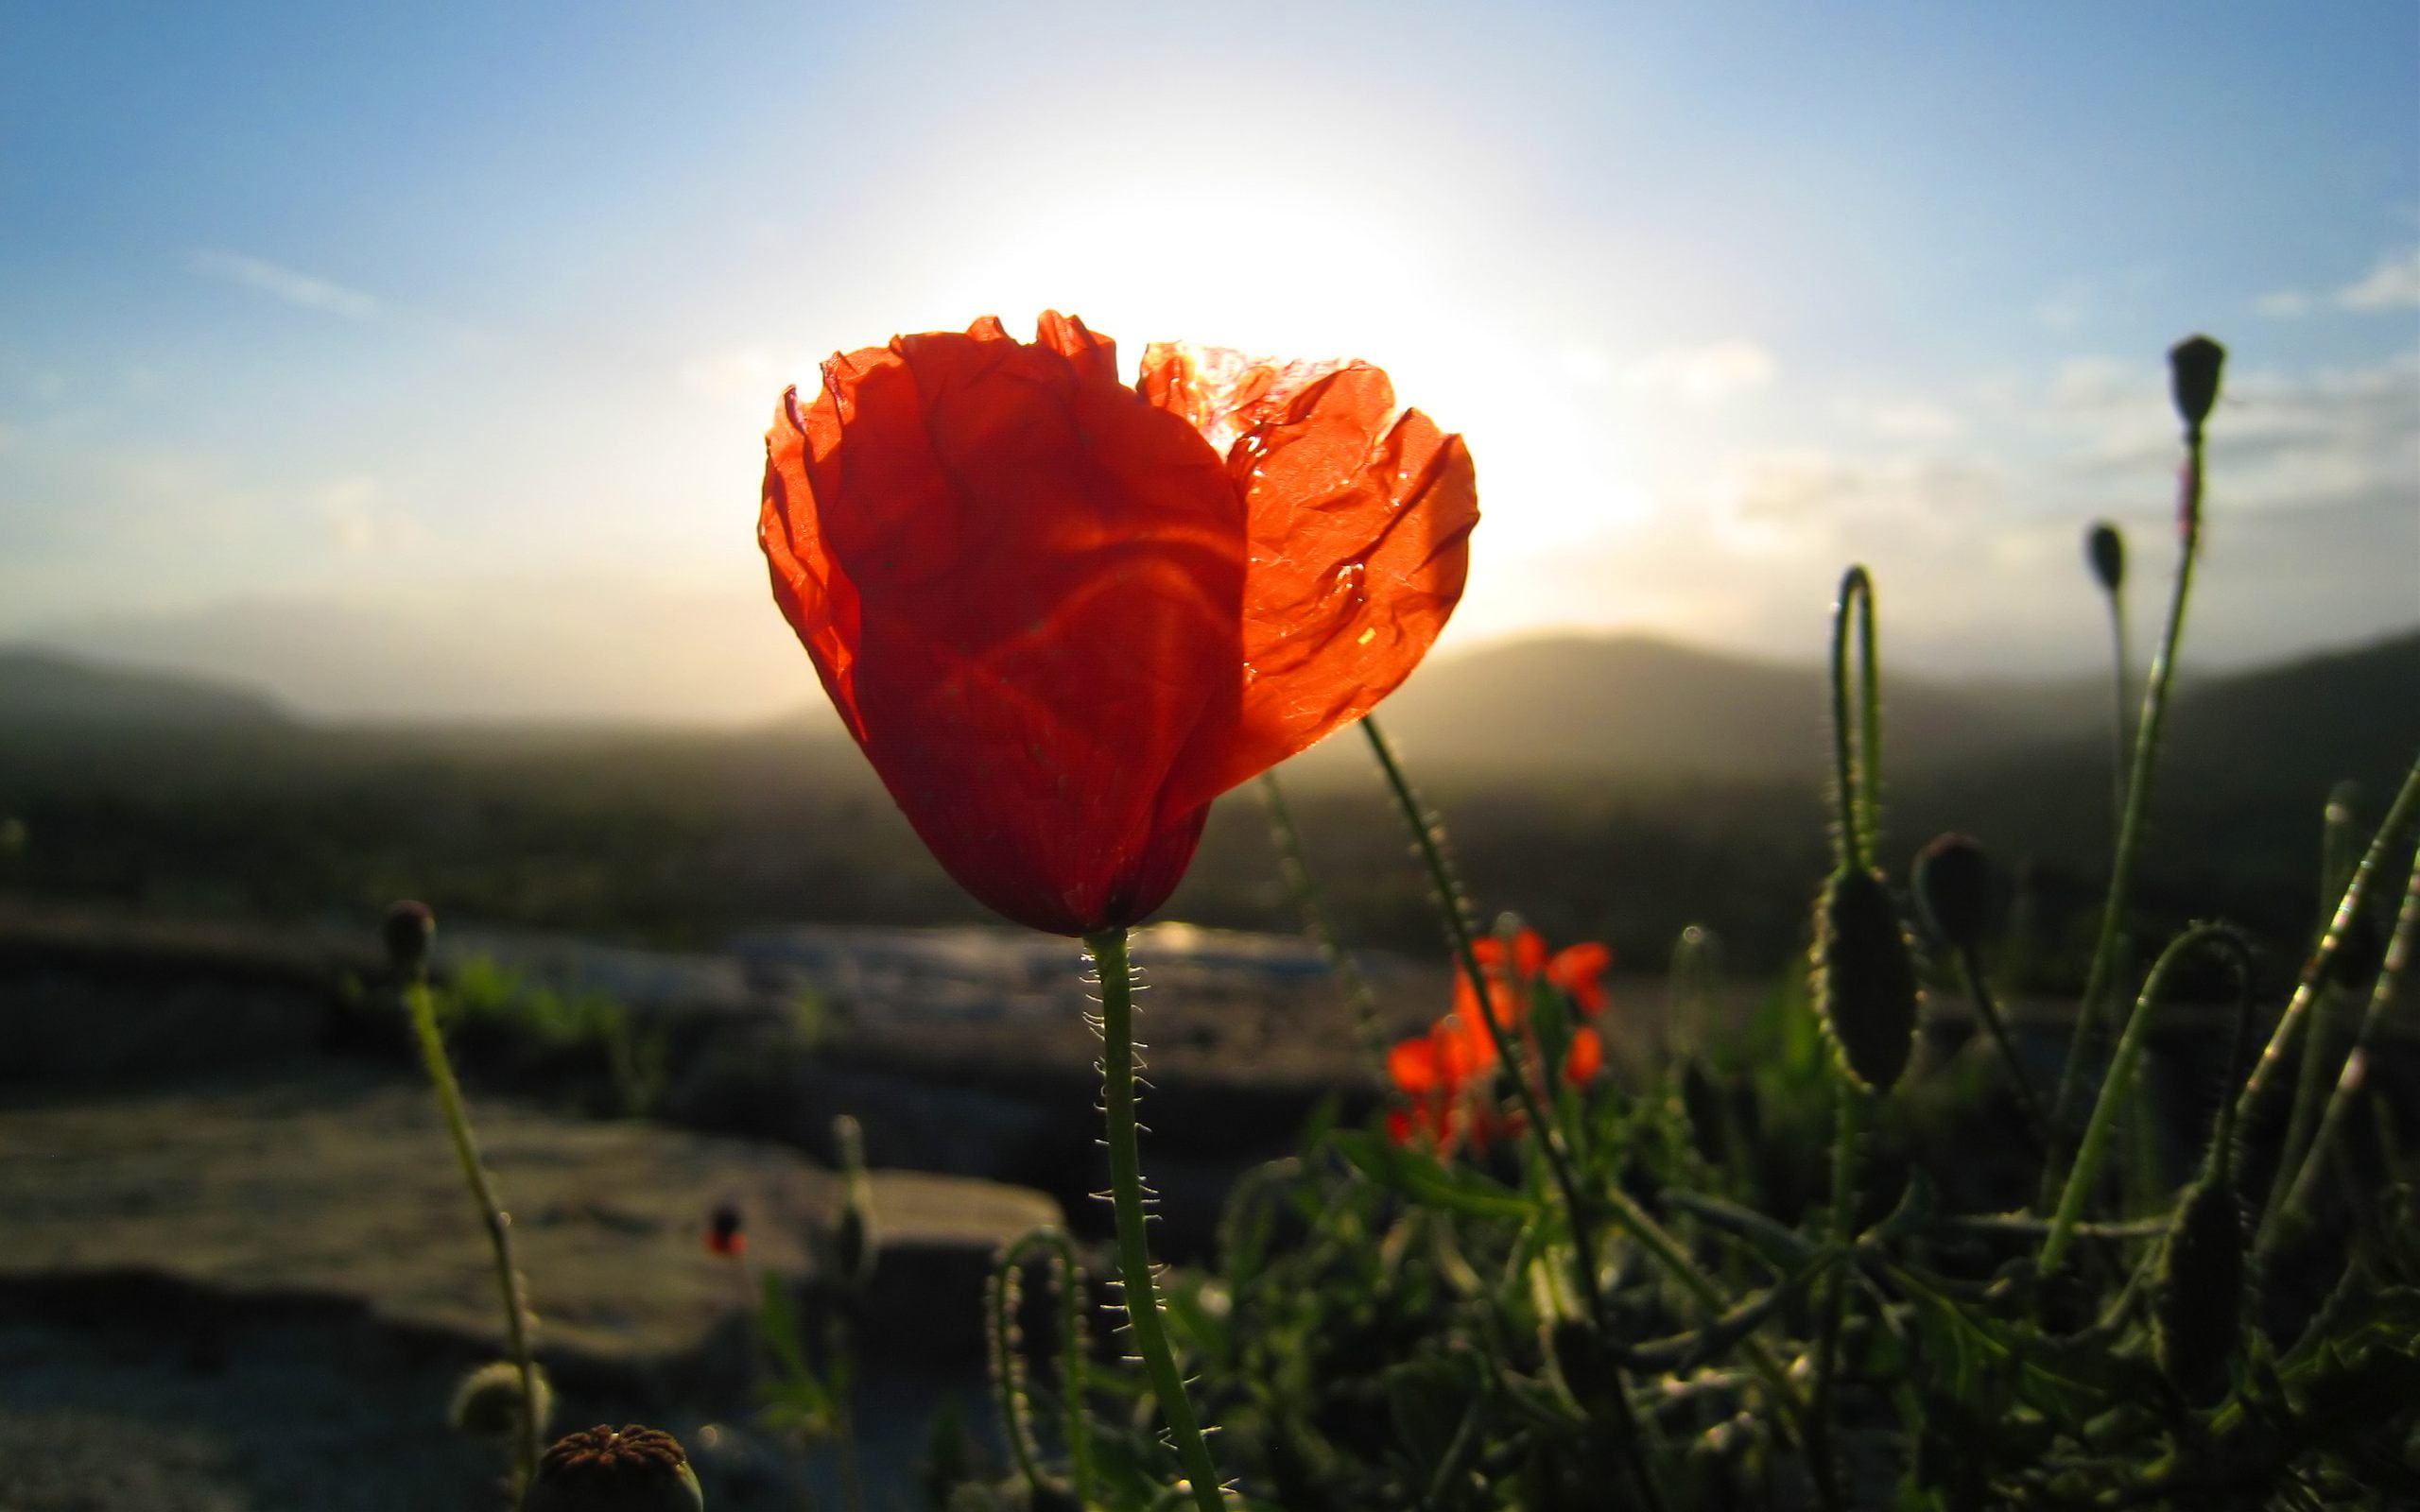 Karte Erde Abendsonne Mit Mohn Full Hd Wallpaper And Hintergrund